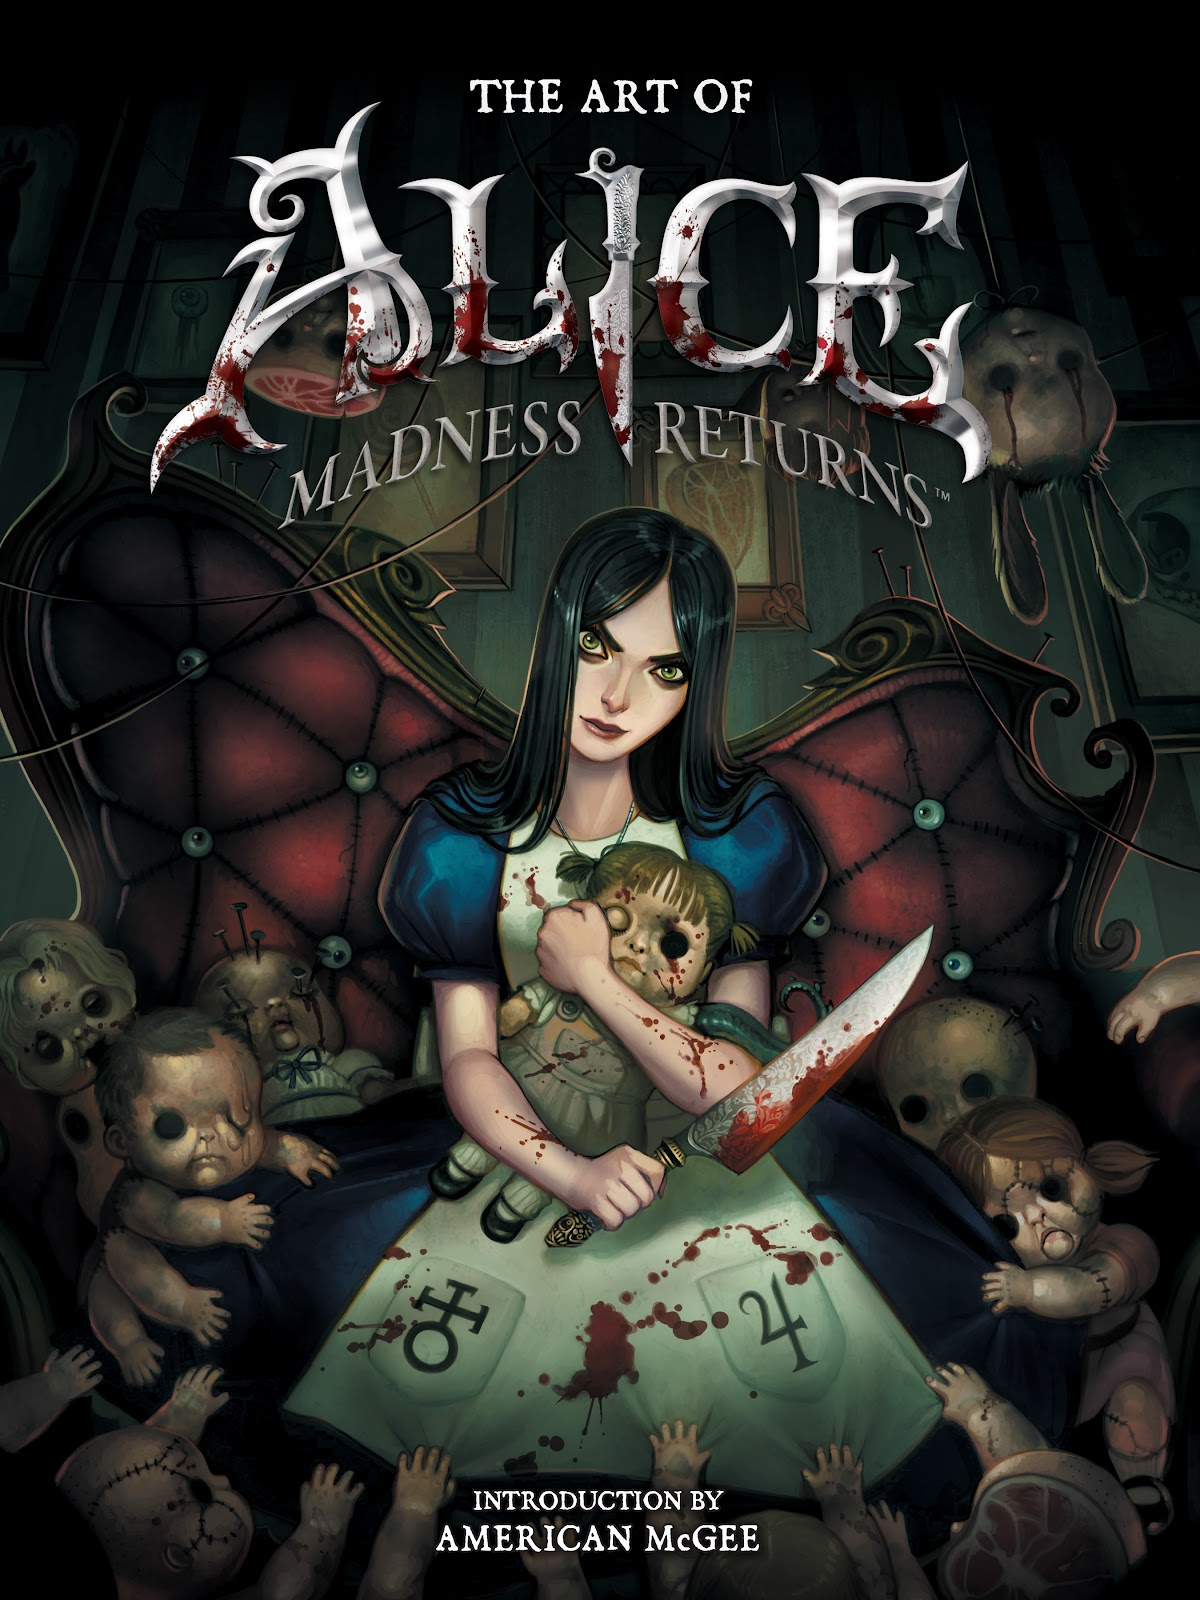 Read online The Art of Alice: Madness Returns comic -  Issue # TPB (Part 1) - 1